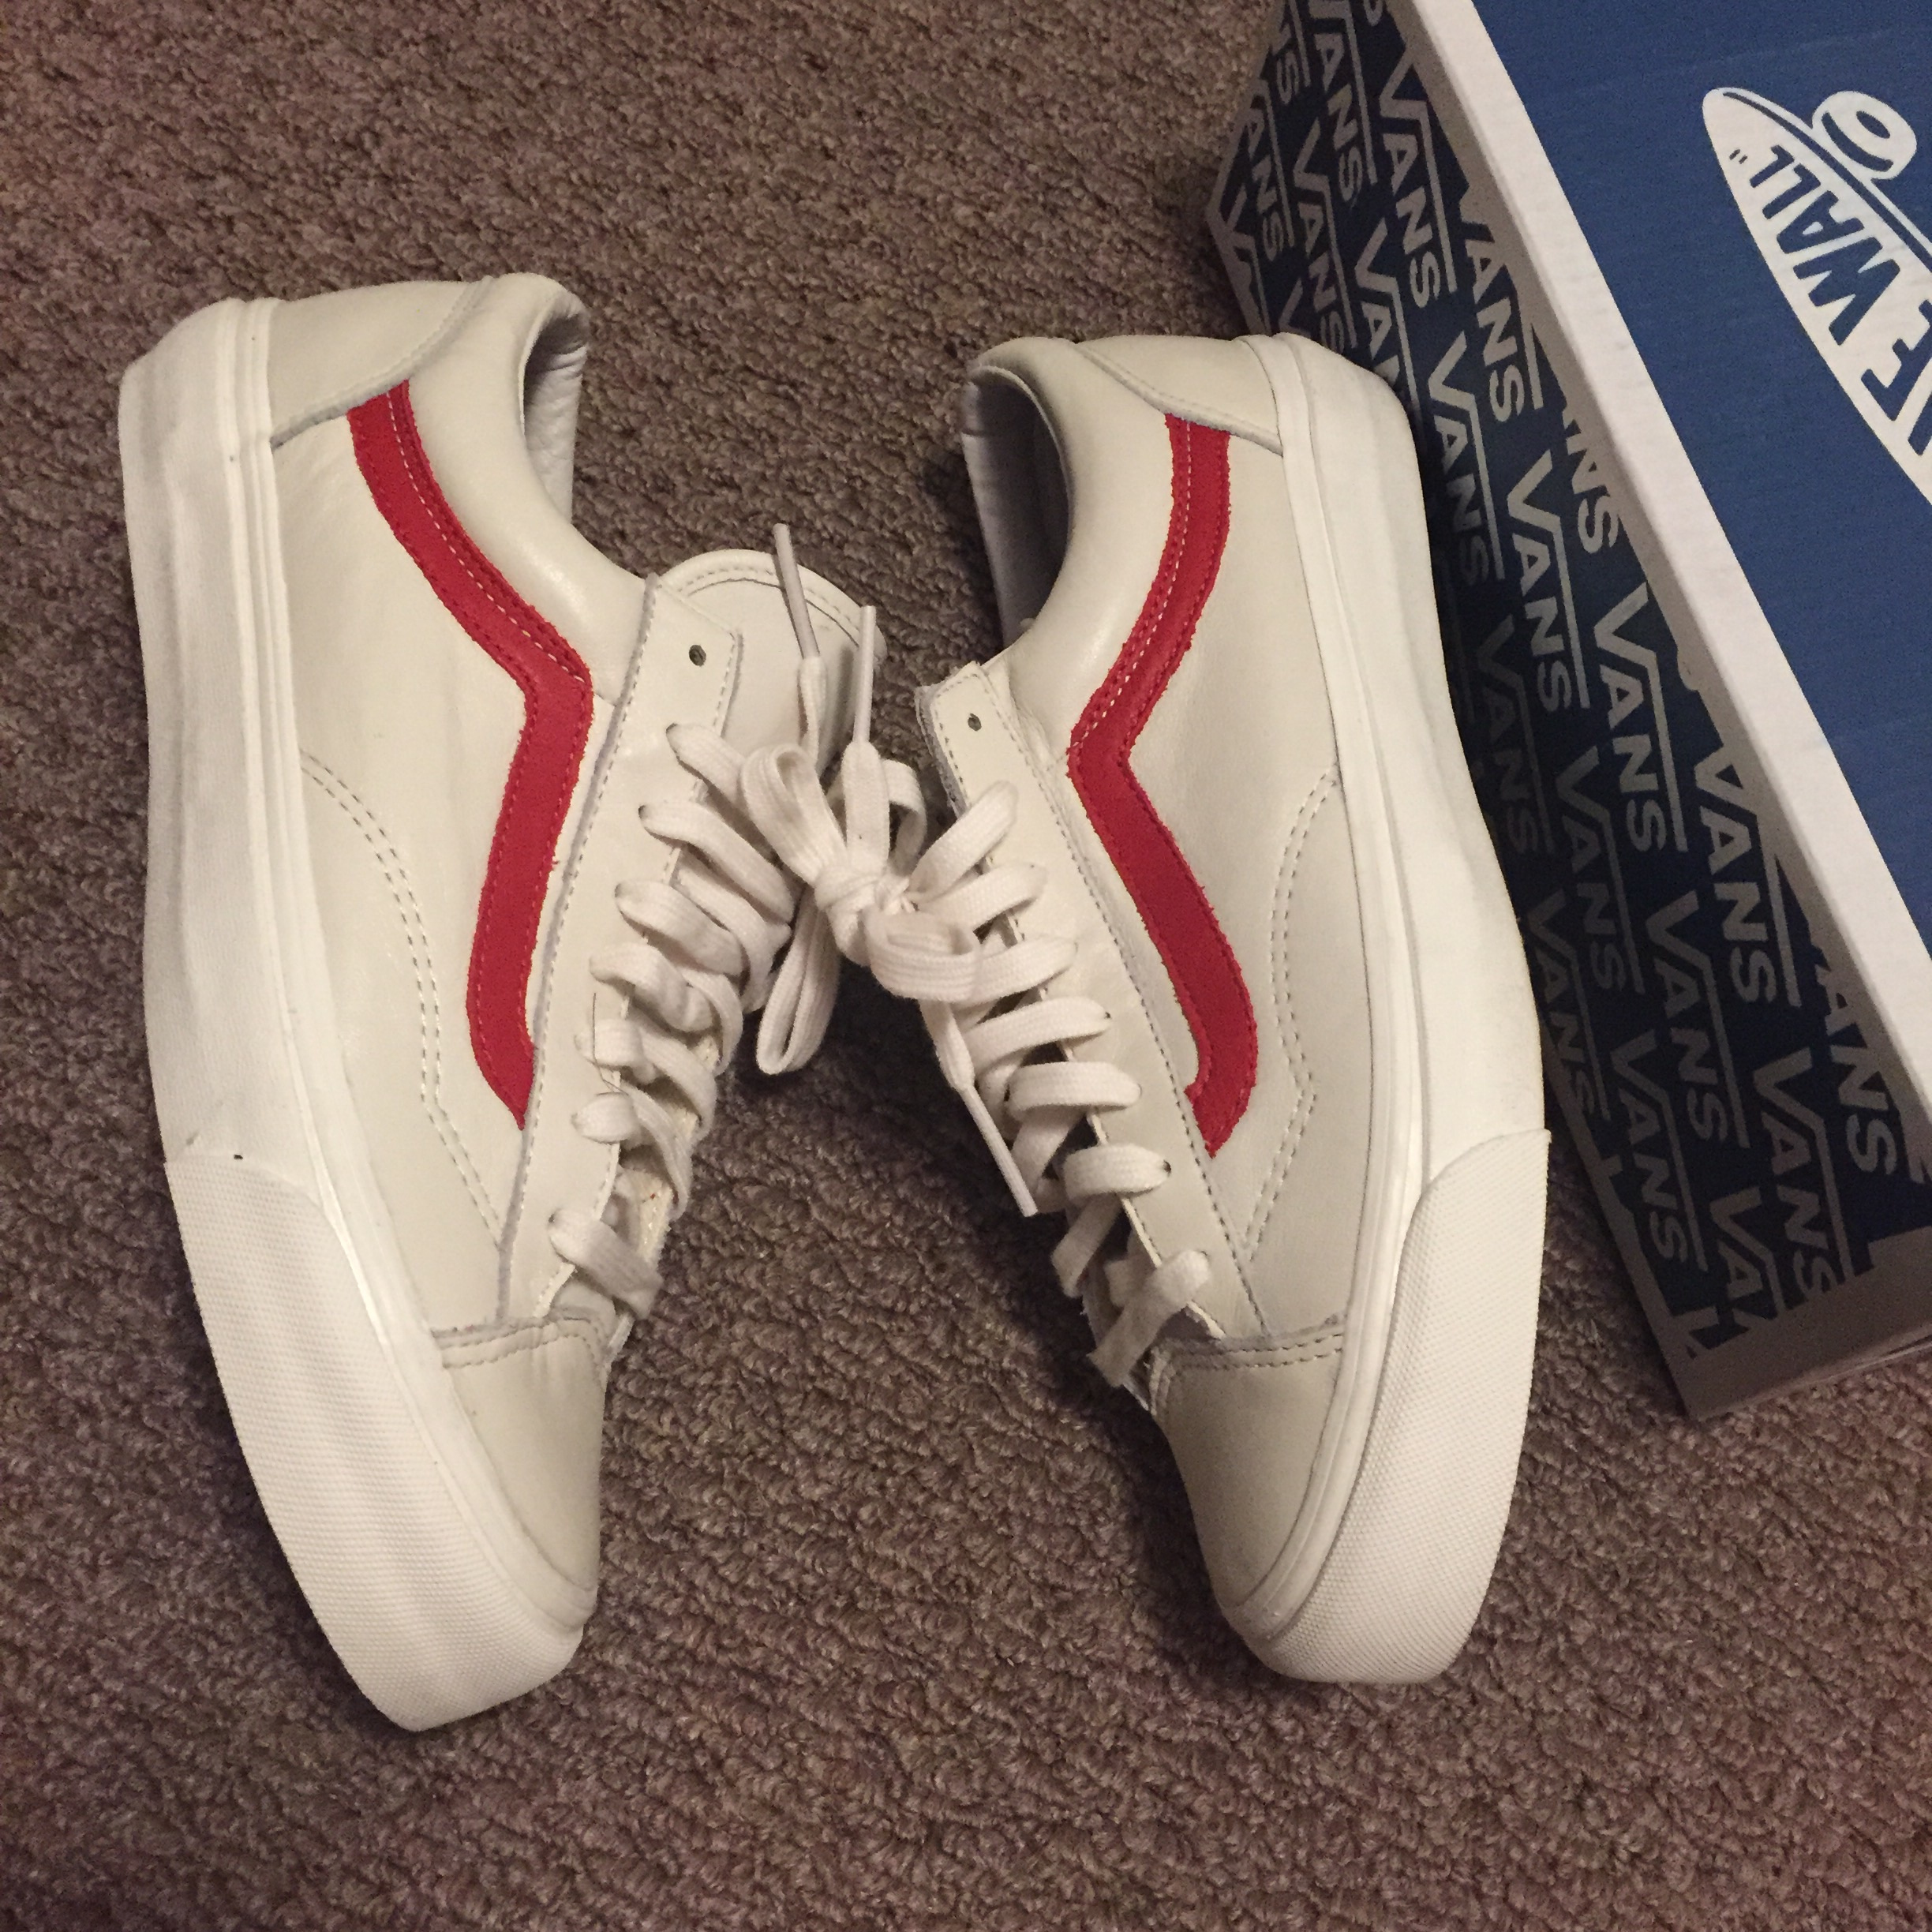 a2e07624bb Vans OG Style 36 LX Premium Leather Size 8 - for Sale - Grailed